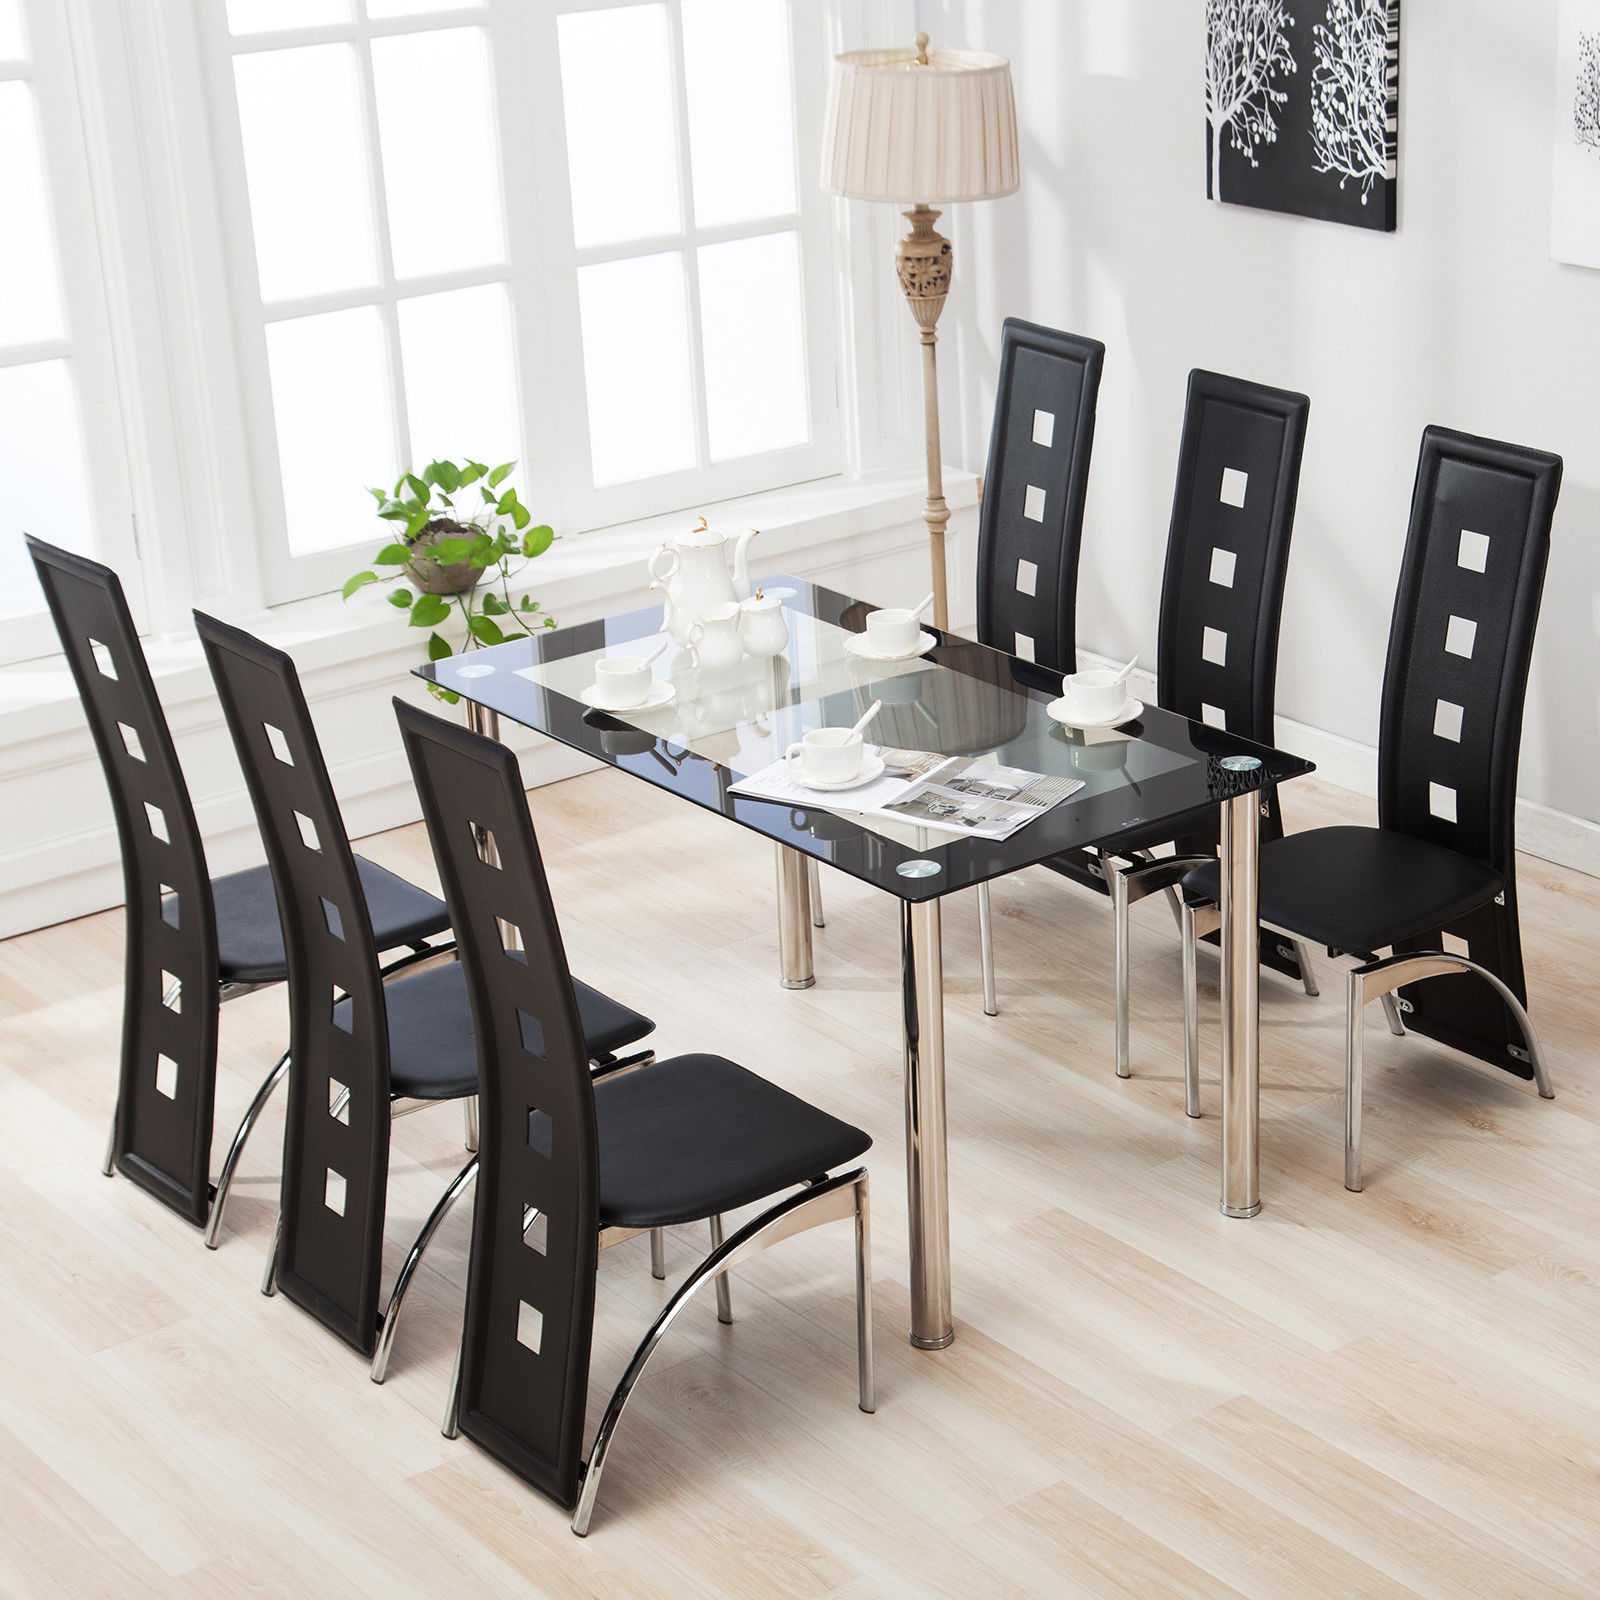 Marvelous Mecor Dining Table Set With 6 Leather Chairs Kitchen Furniture Black 7  Piece Glass   Walmart.com